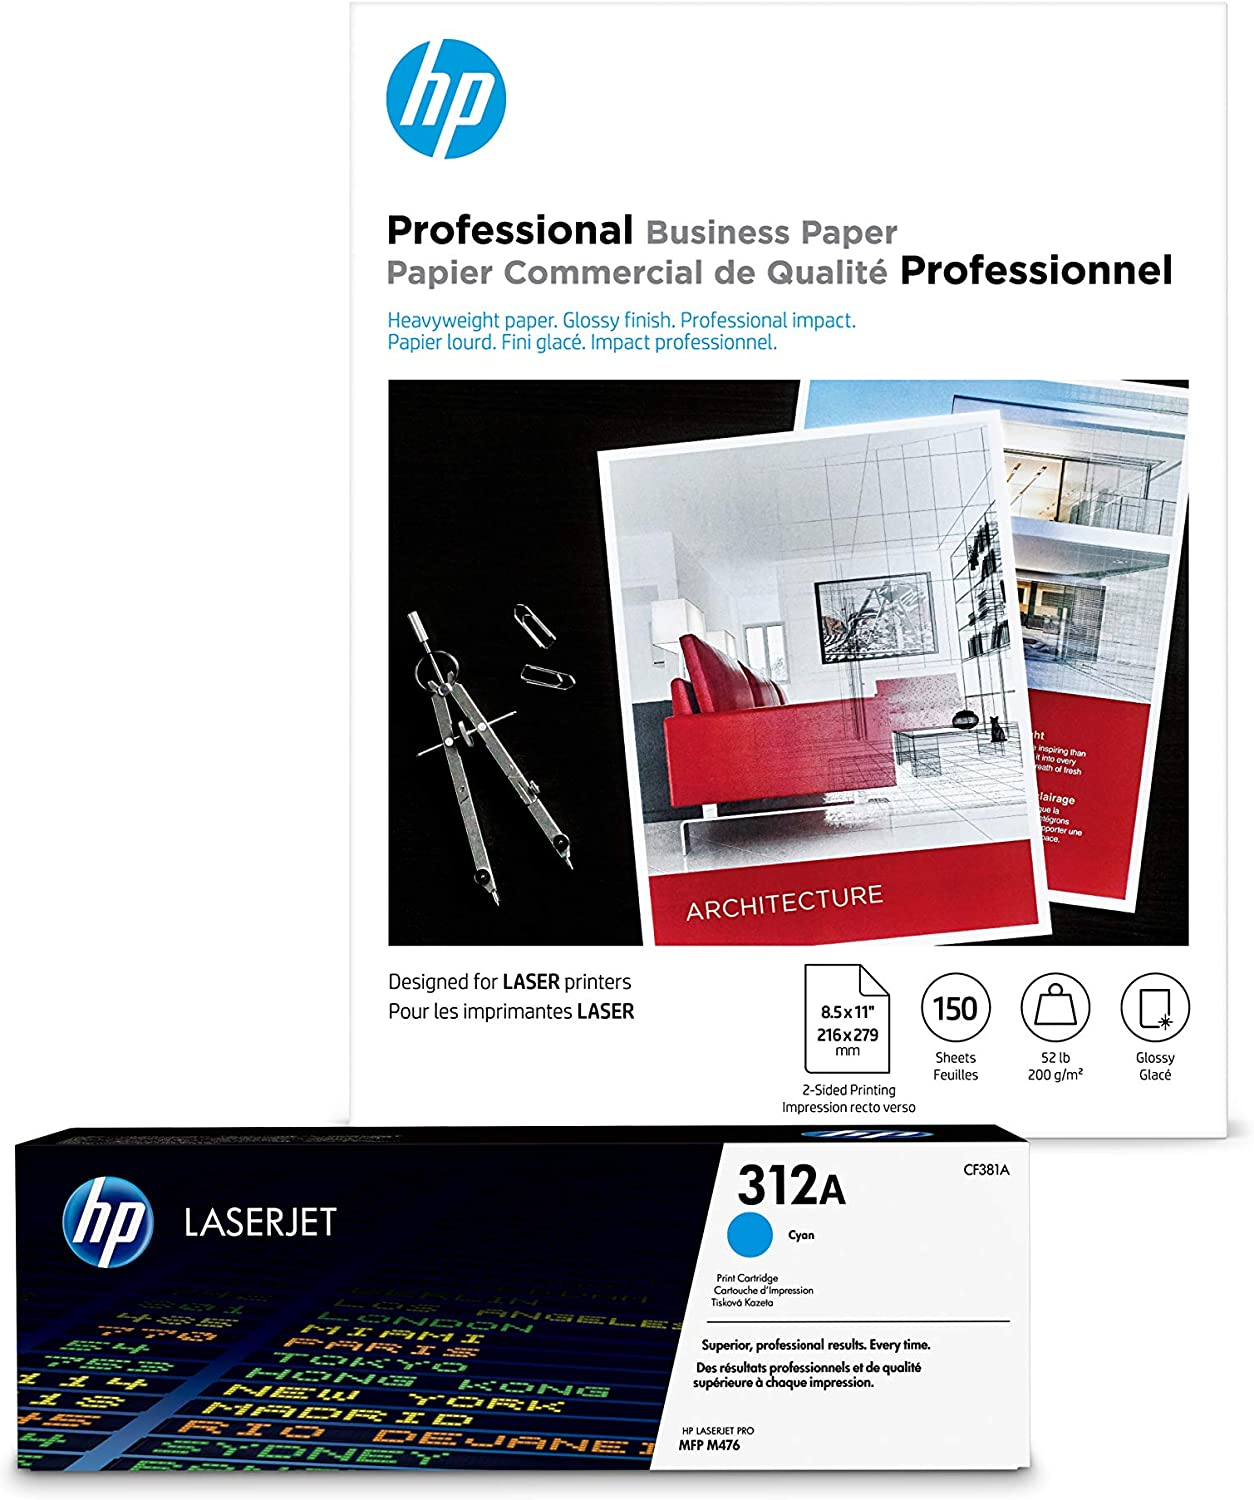 HP 312A Cyan Toner + Brochure 11 Laser x 8.5 Paper Very popular Glossy Selling and selling